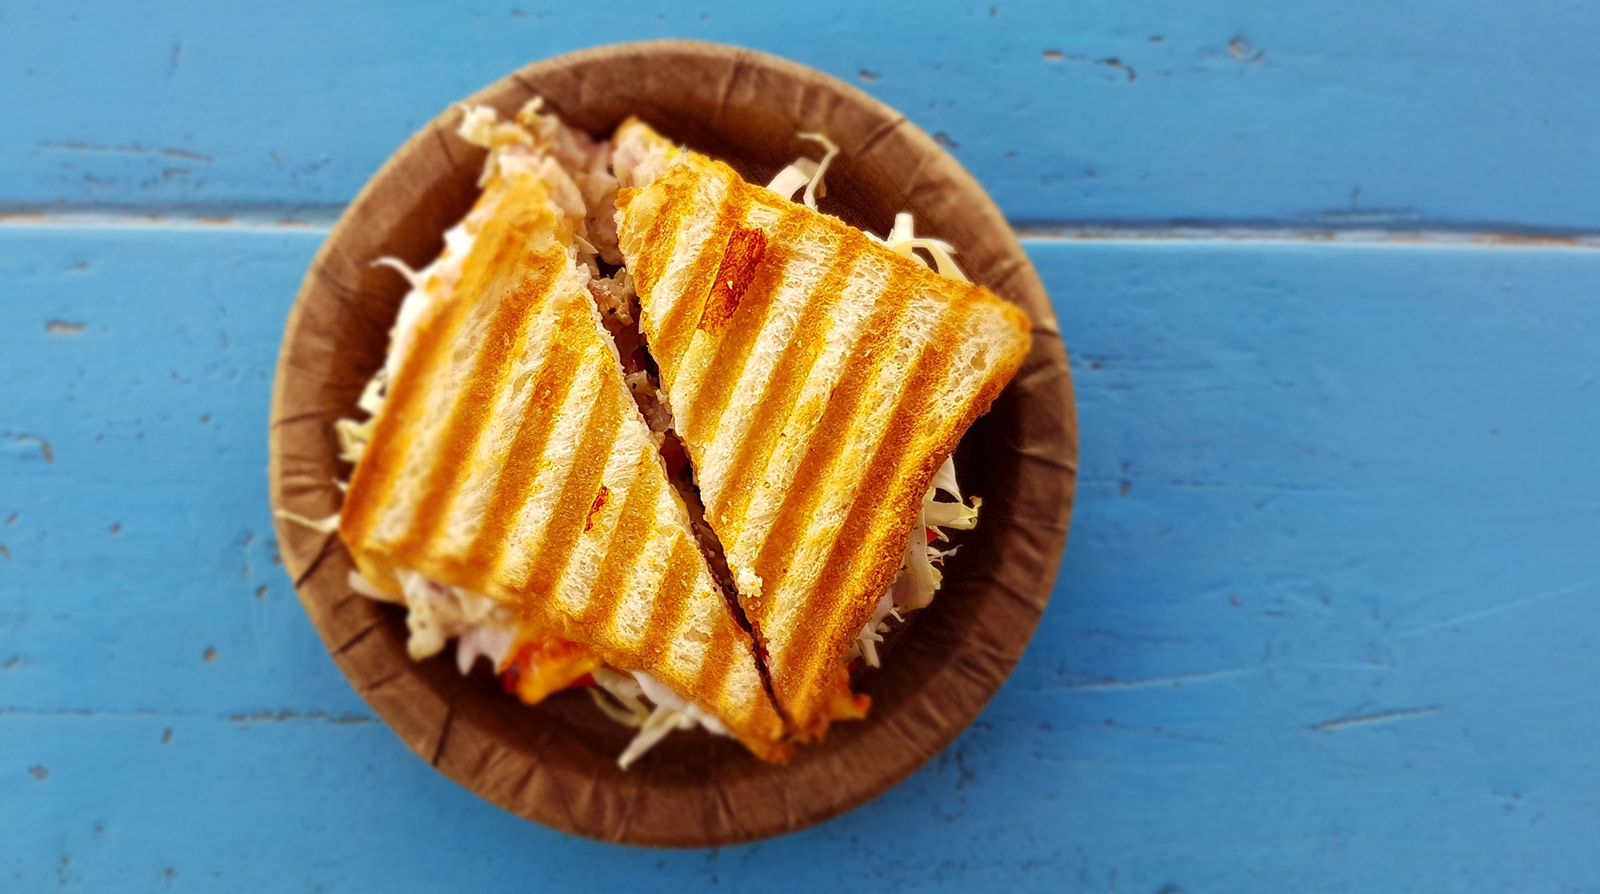 Make your best vegan grilled cheese sandwich ever. Photo: Asnim Ansari / Unsplash